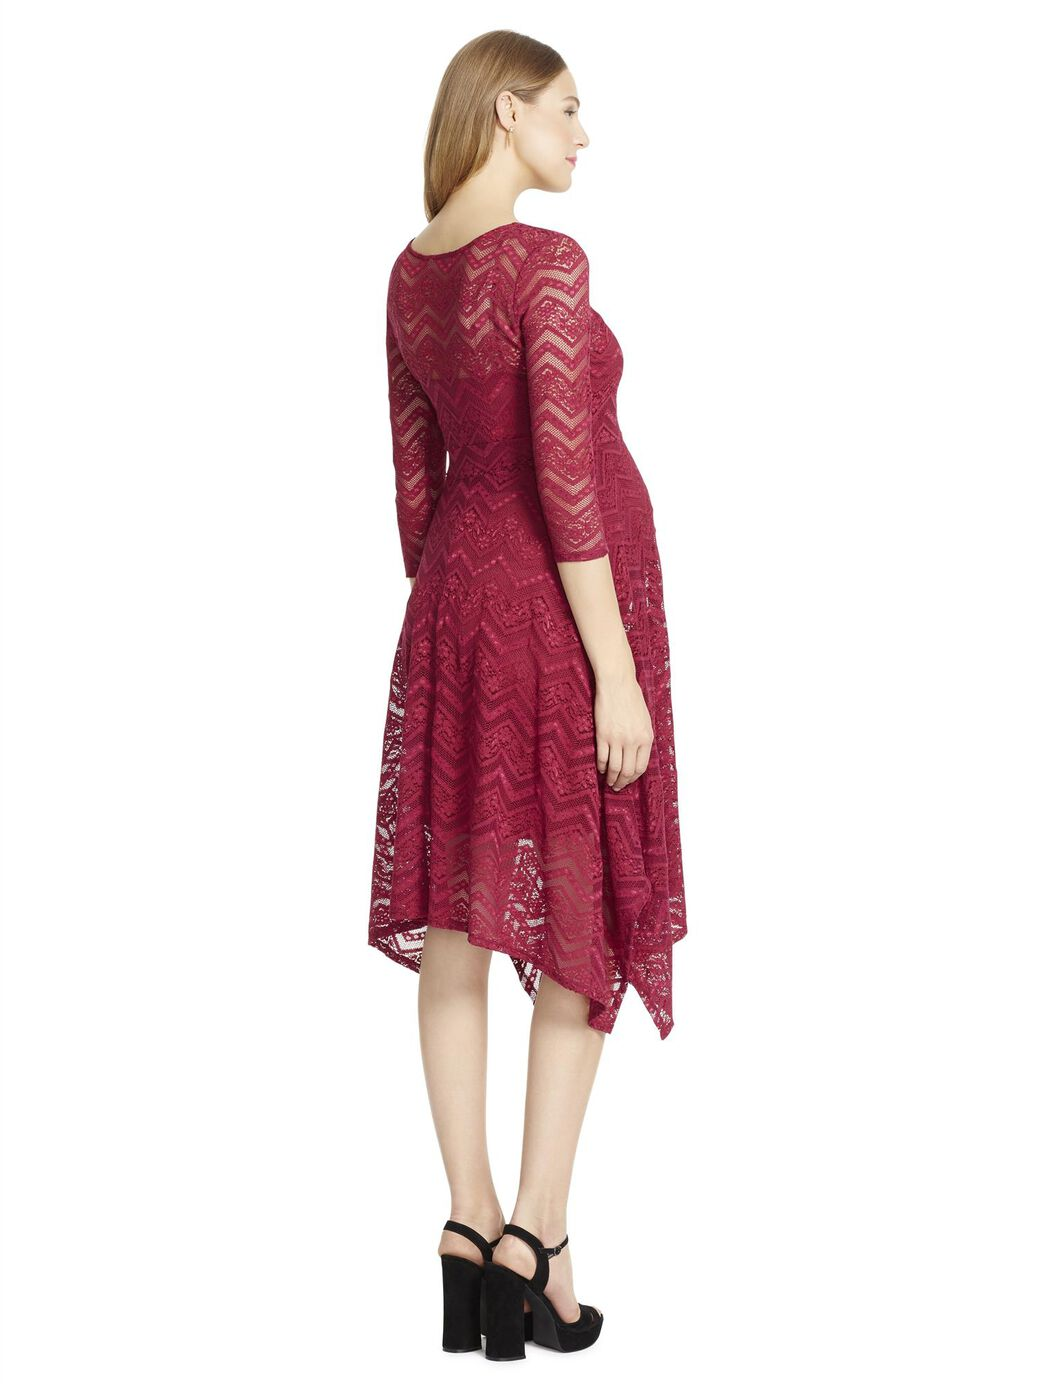 Free shipping on maternity dresses at hereufilbk.gq Shop formal, lace, cocktail, evening & more maternity dresses from top brands. Free shipping & returns.